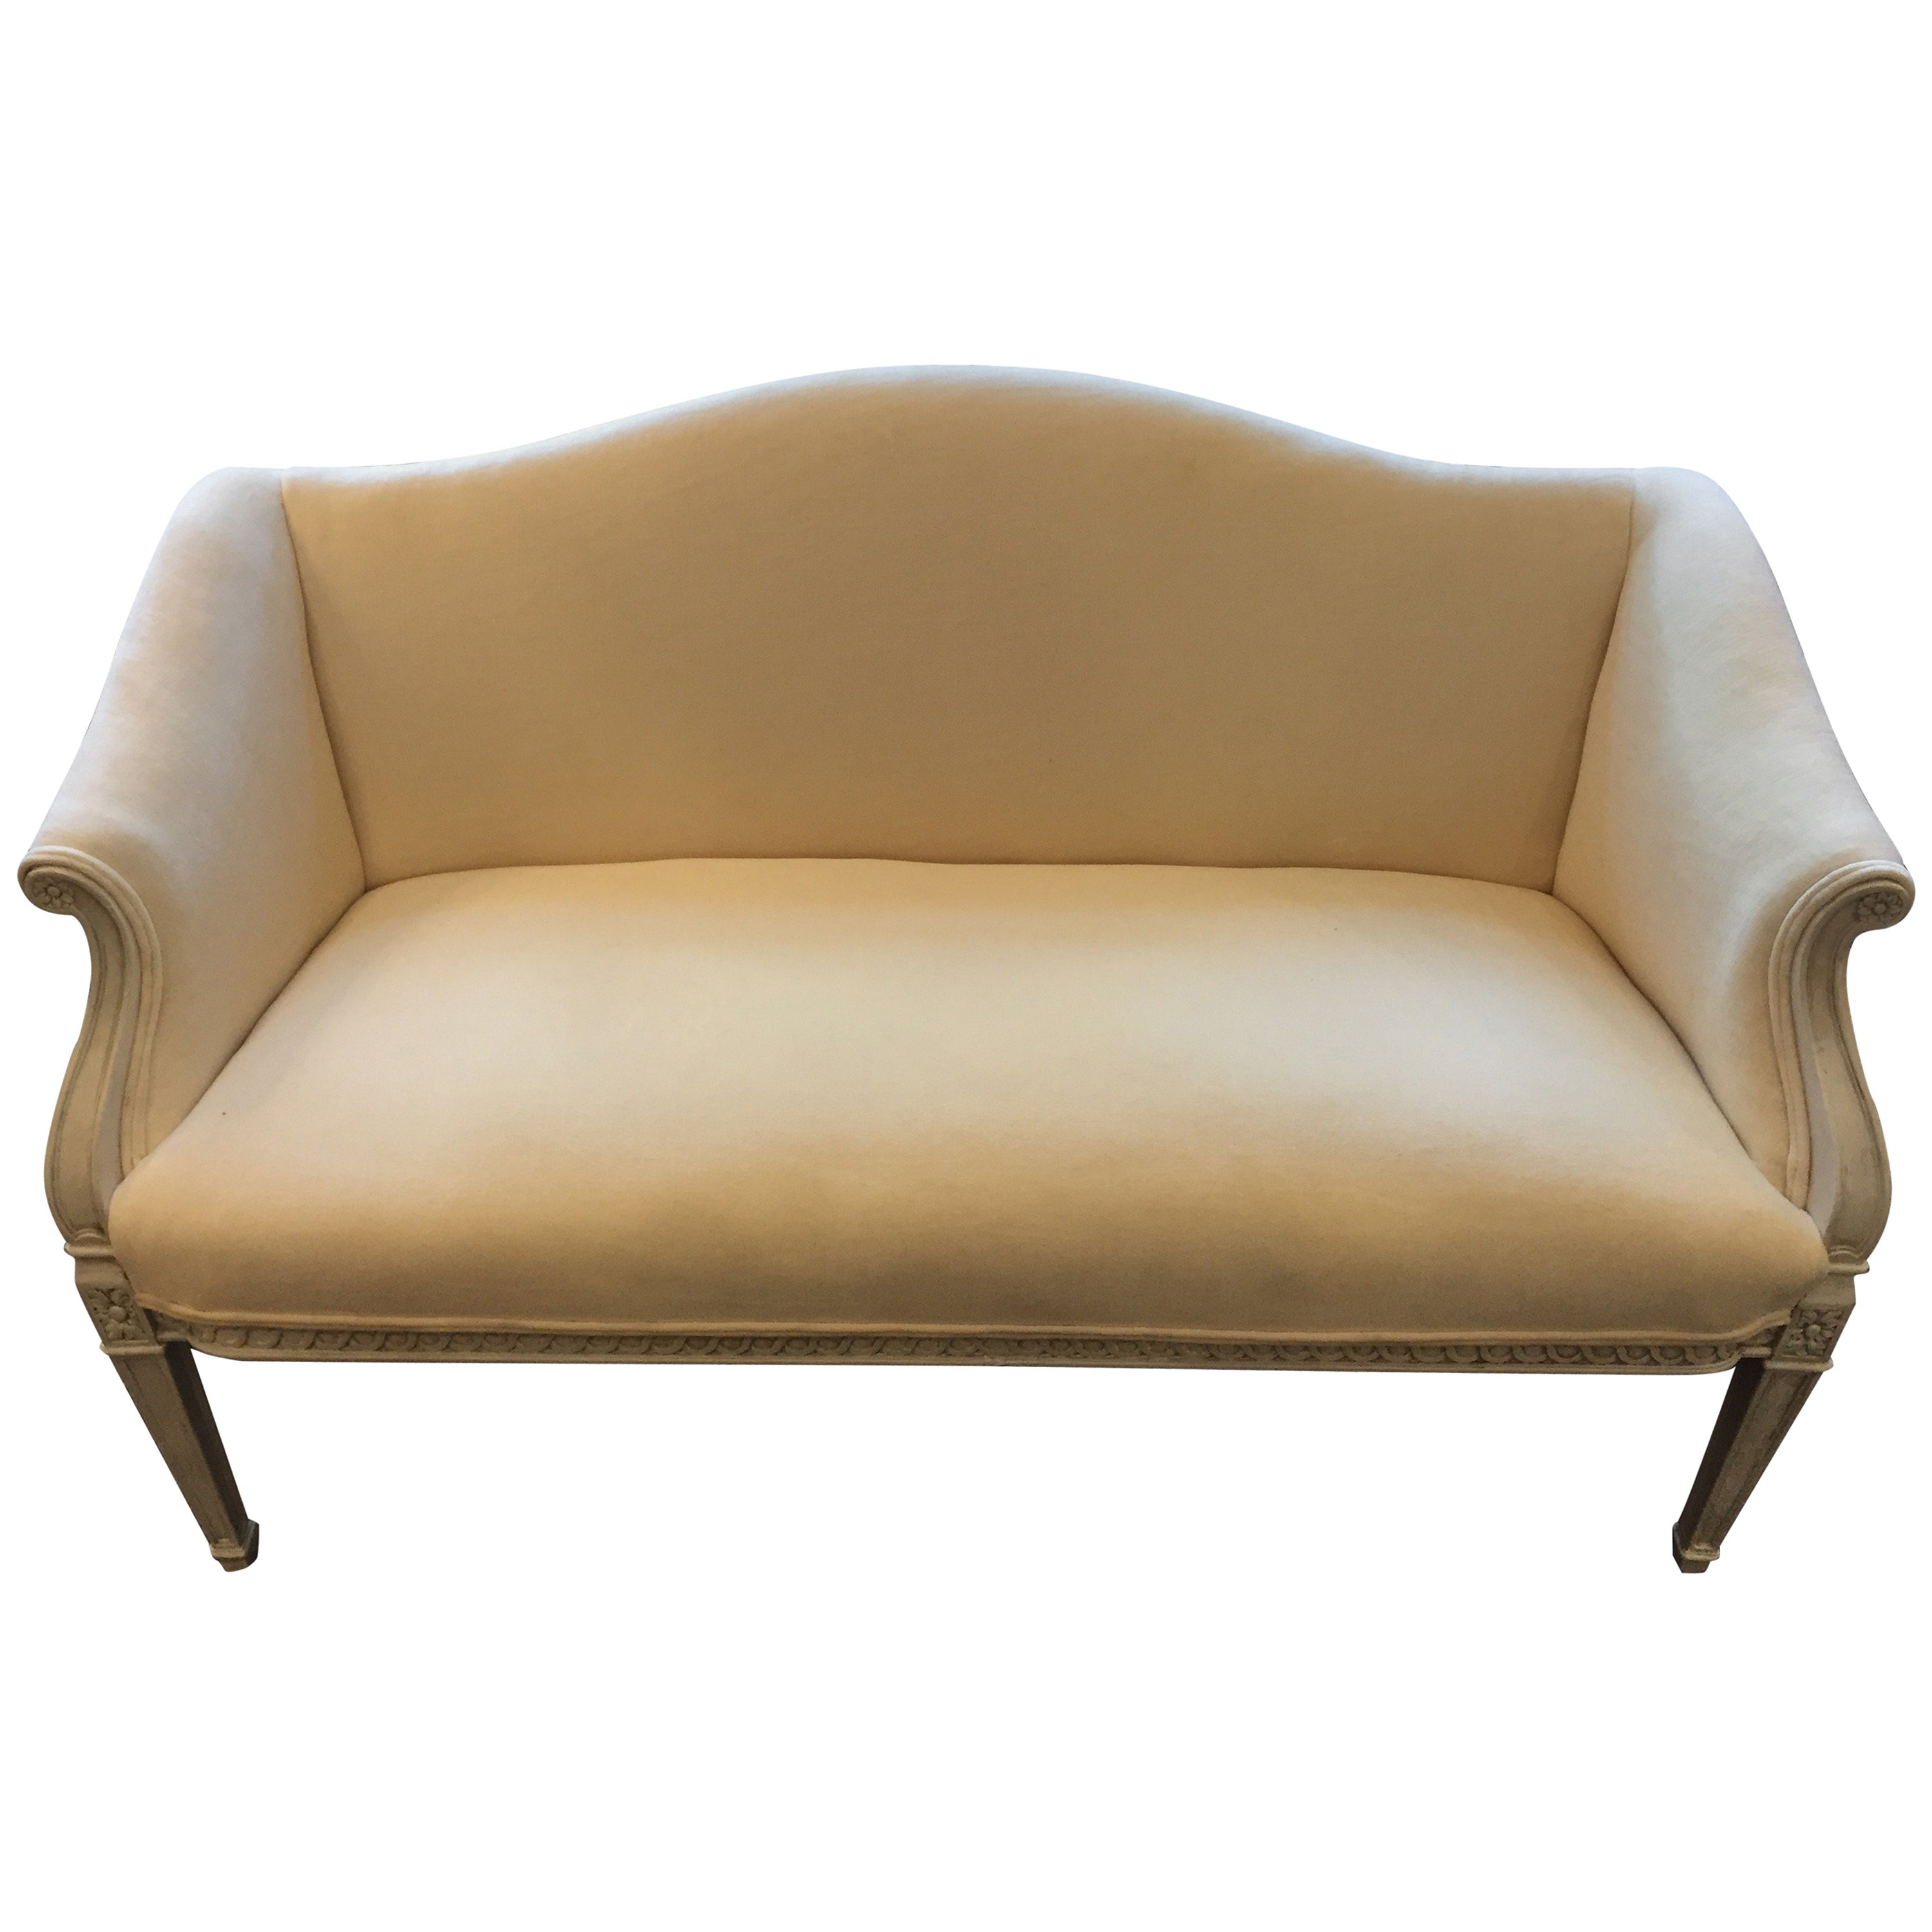 wood org id settee f at french furniture seating and velvet painted bamboo style settees loveseat